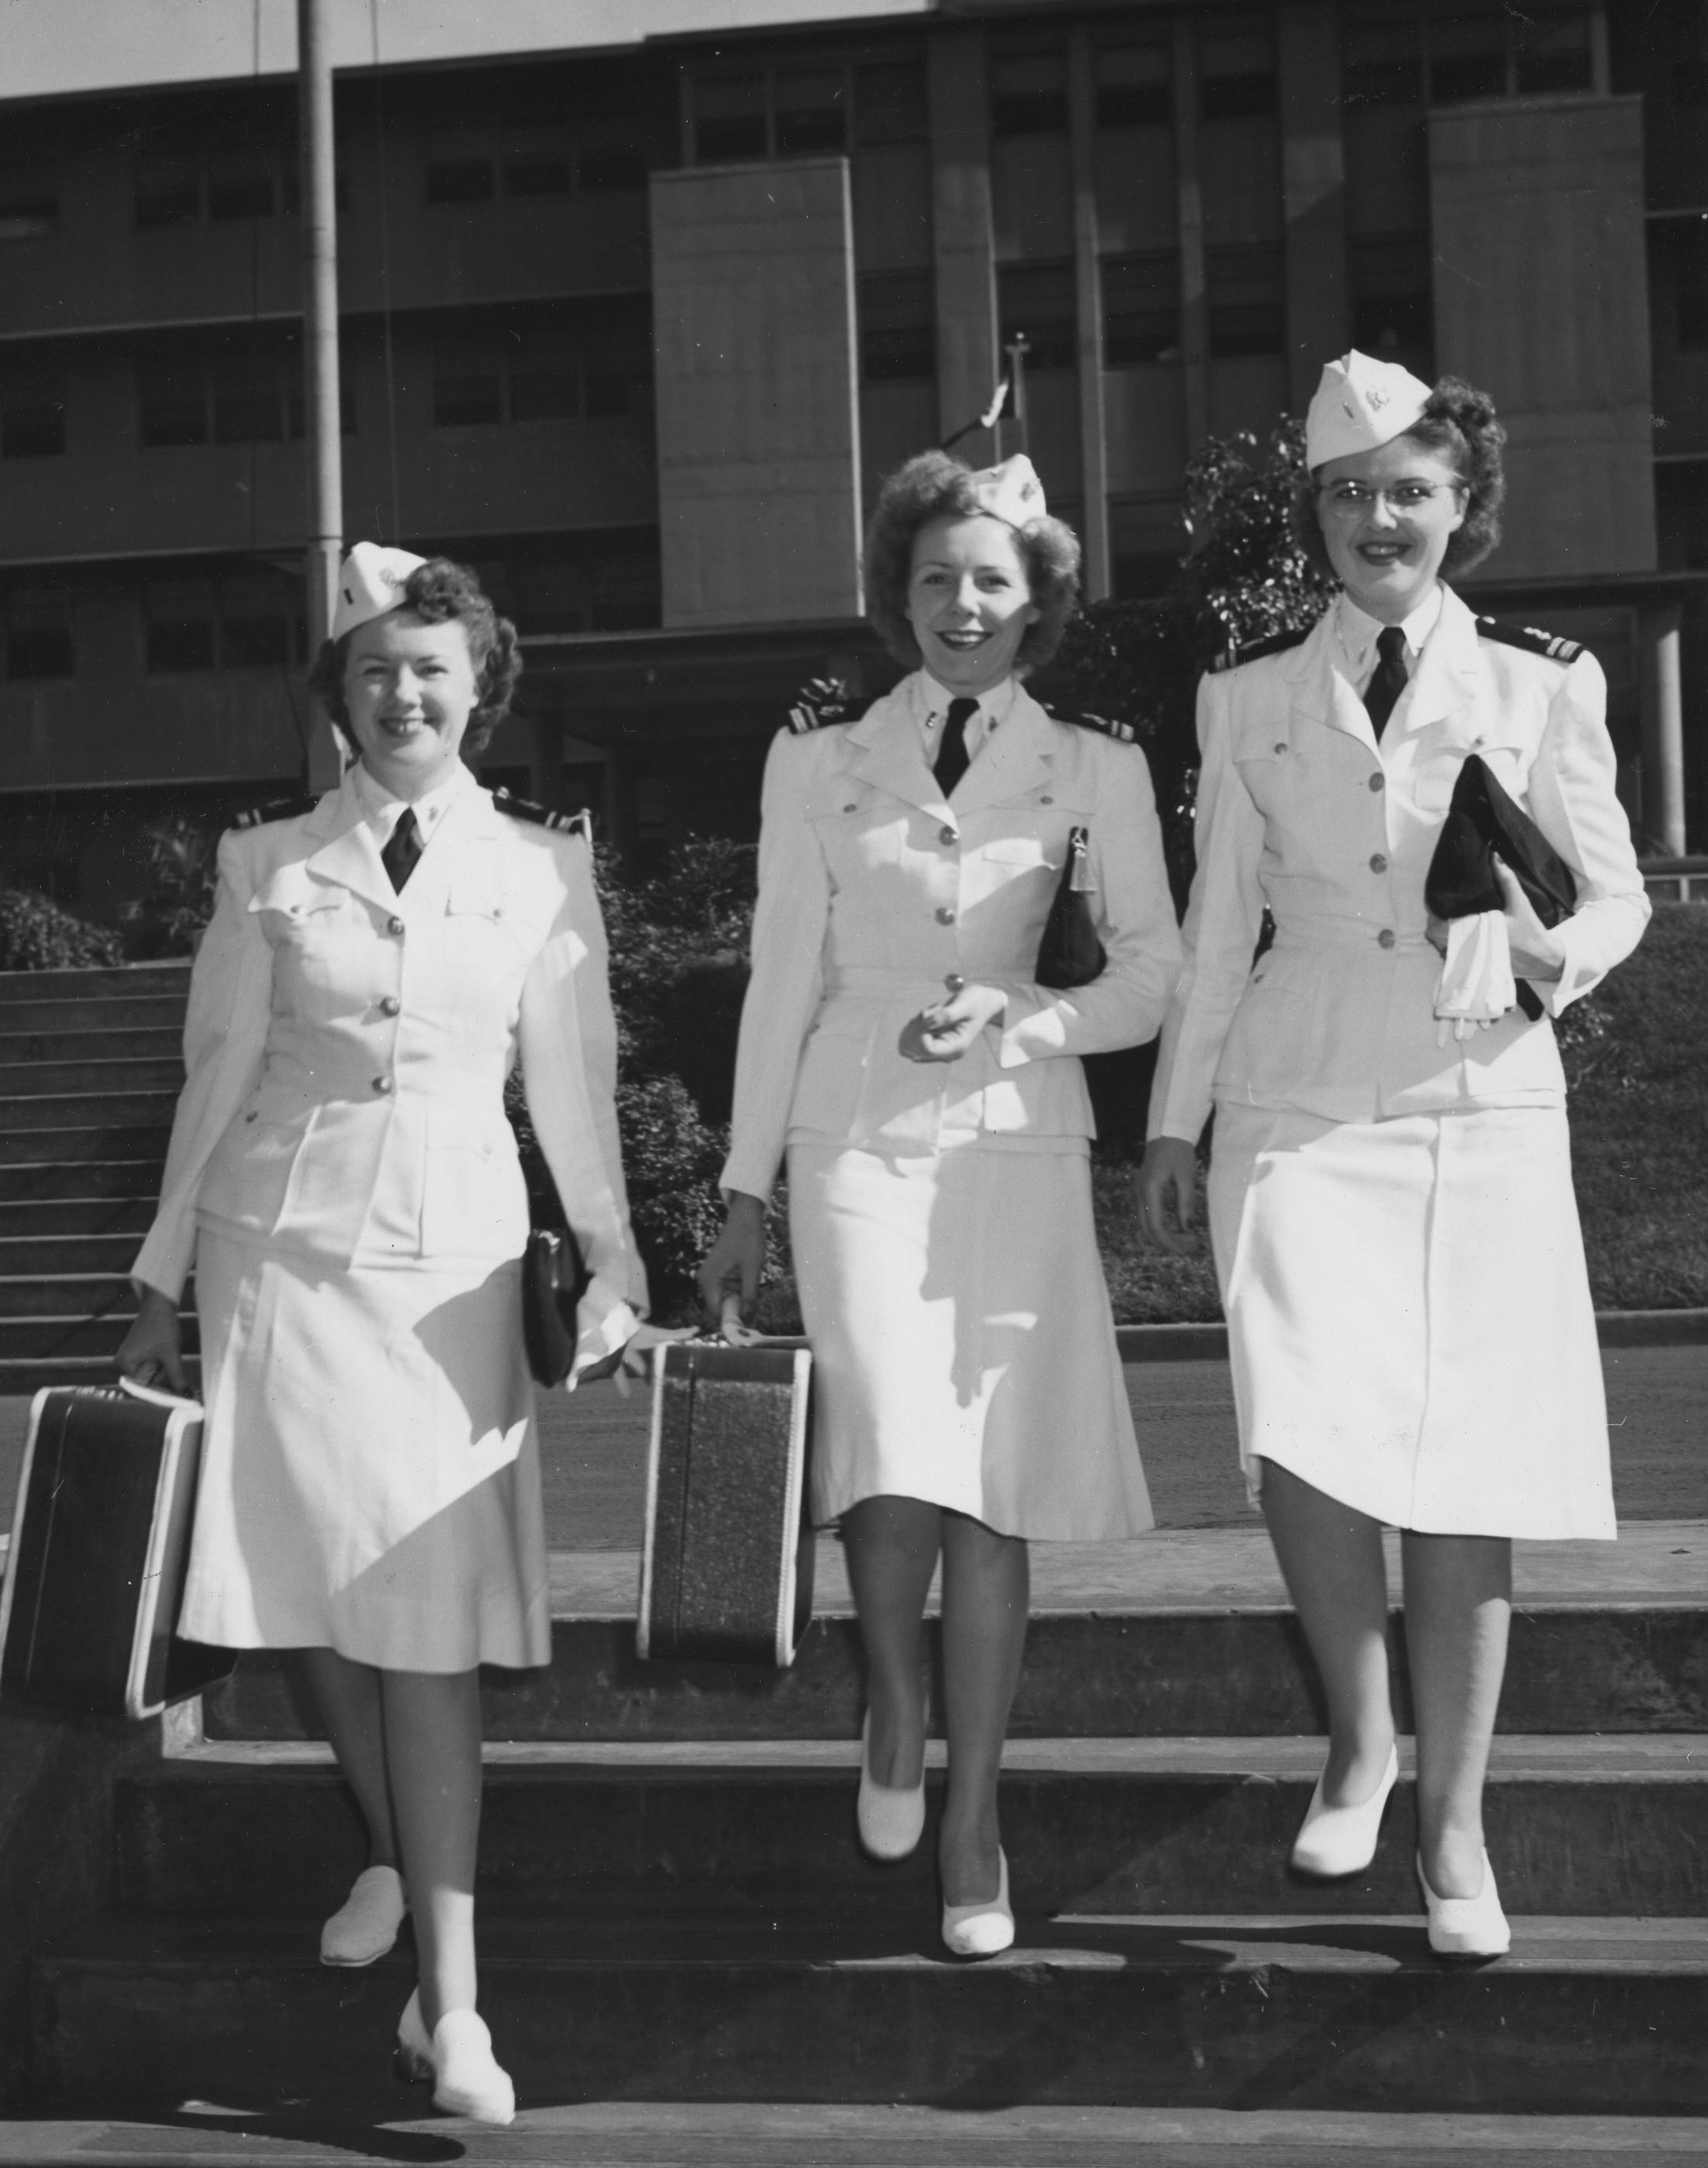 Three Navy Nurses at Pearl Harbor Naval Hospital